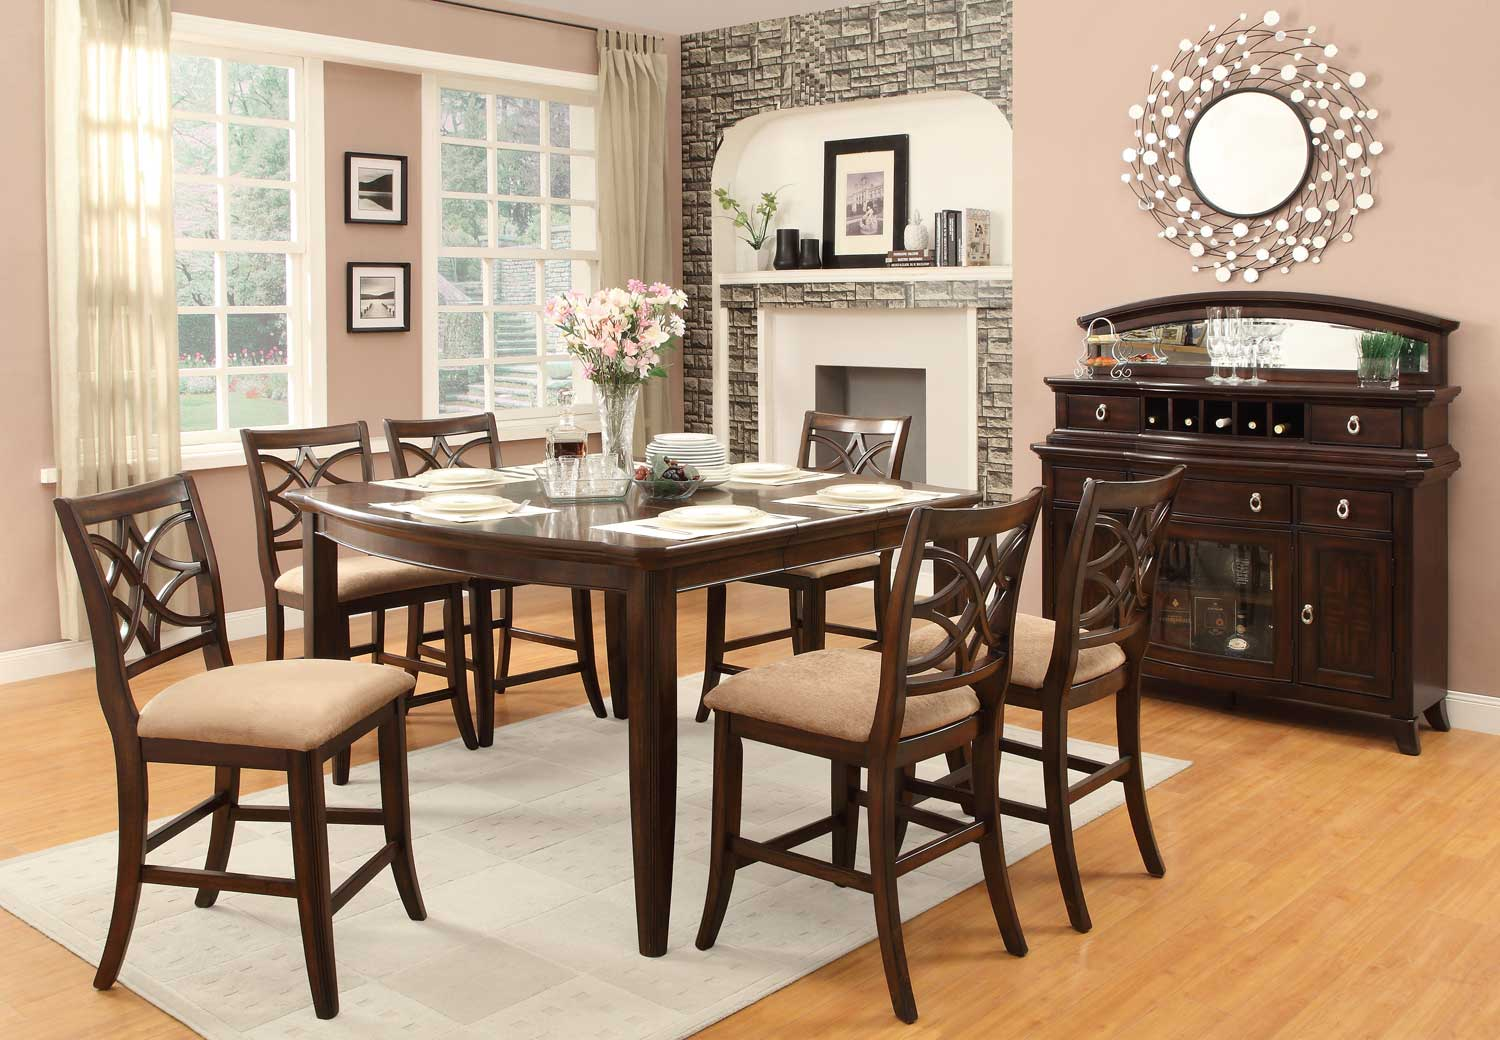 Homelegance Keegan Counter Height Dining Set Neutral Tone Fabric Cherry 2546 36 Din Set At